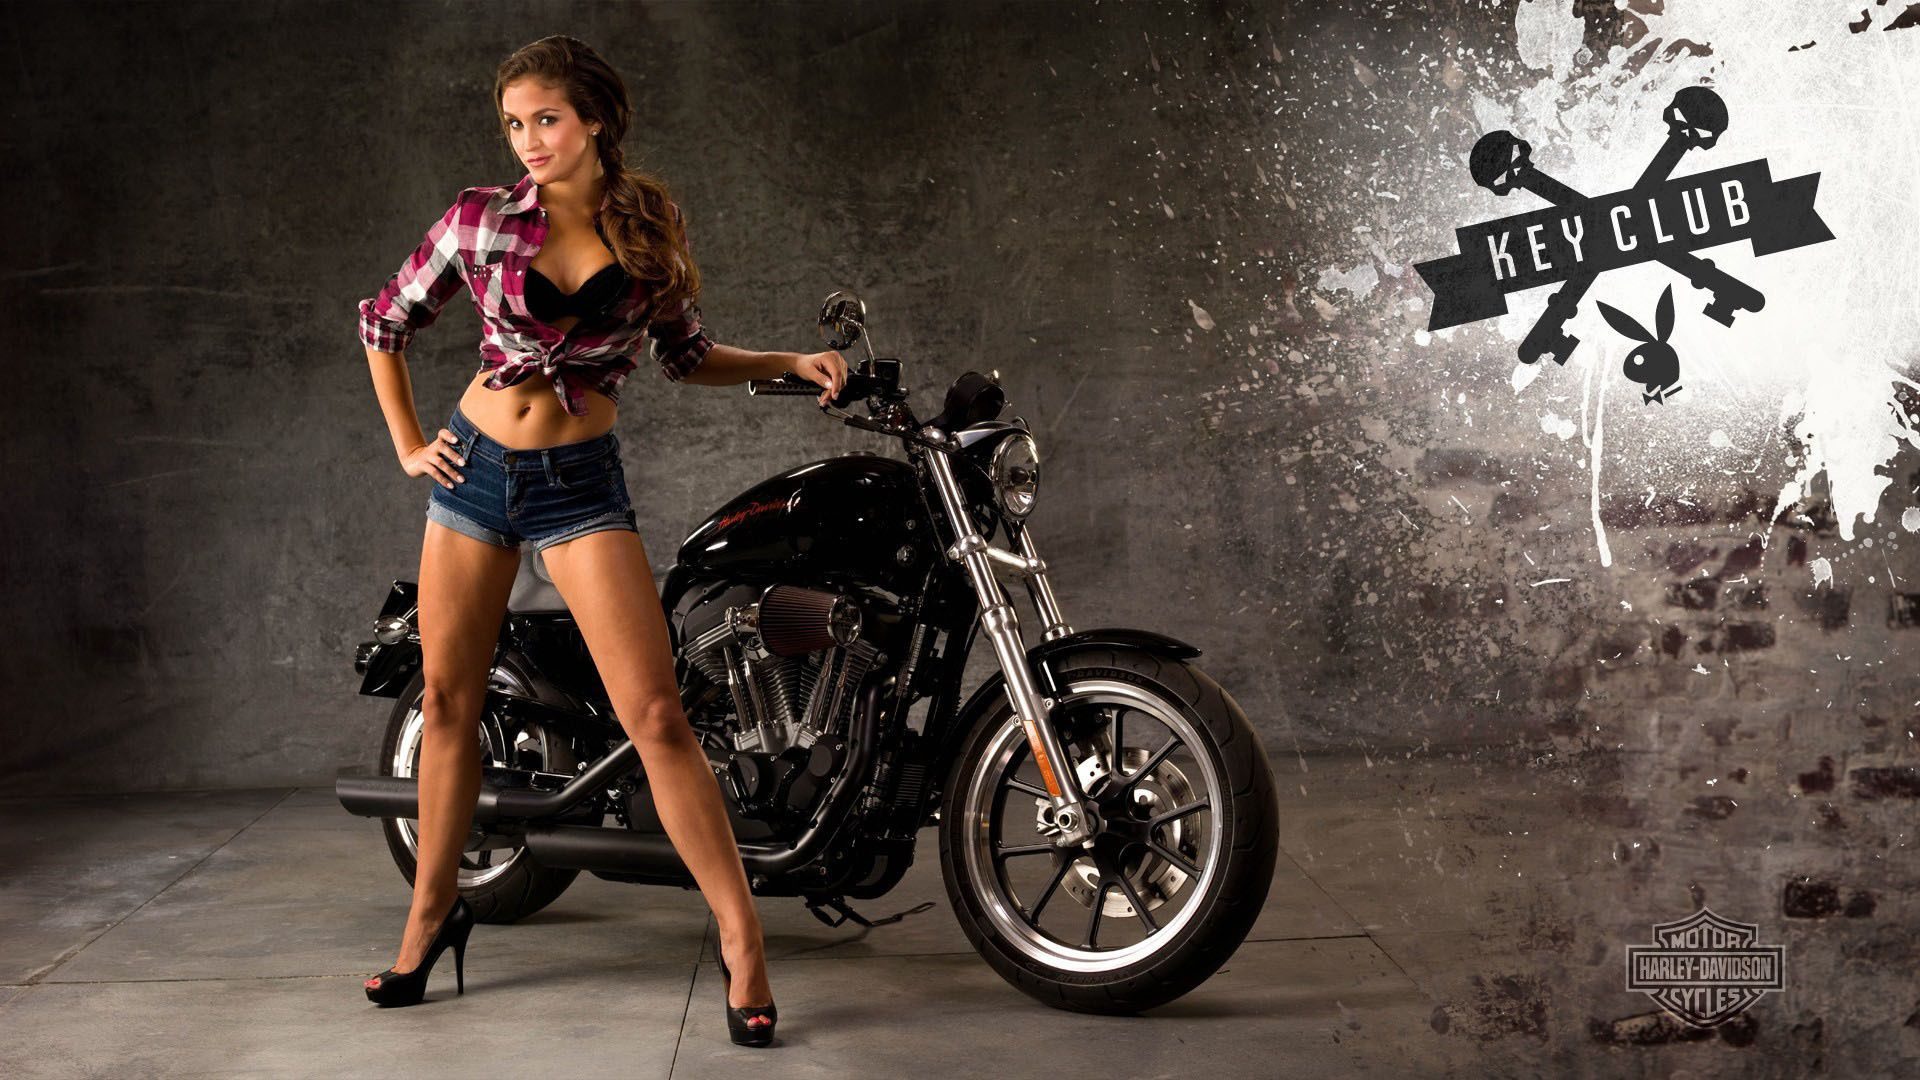 girls and motorcycles woman adult bike